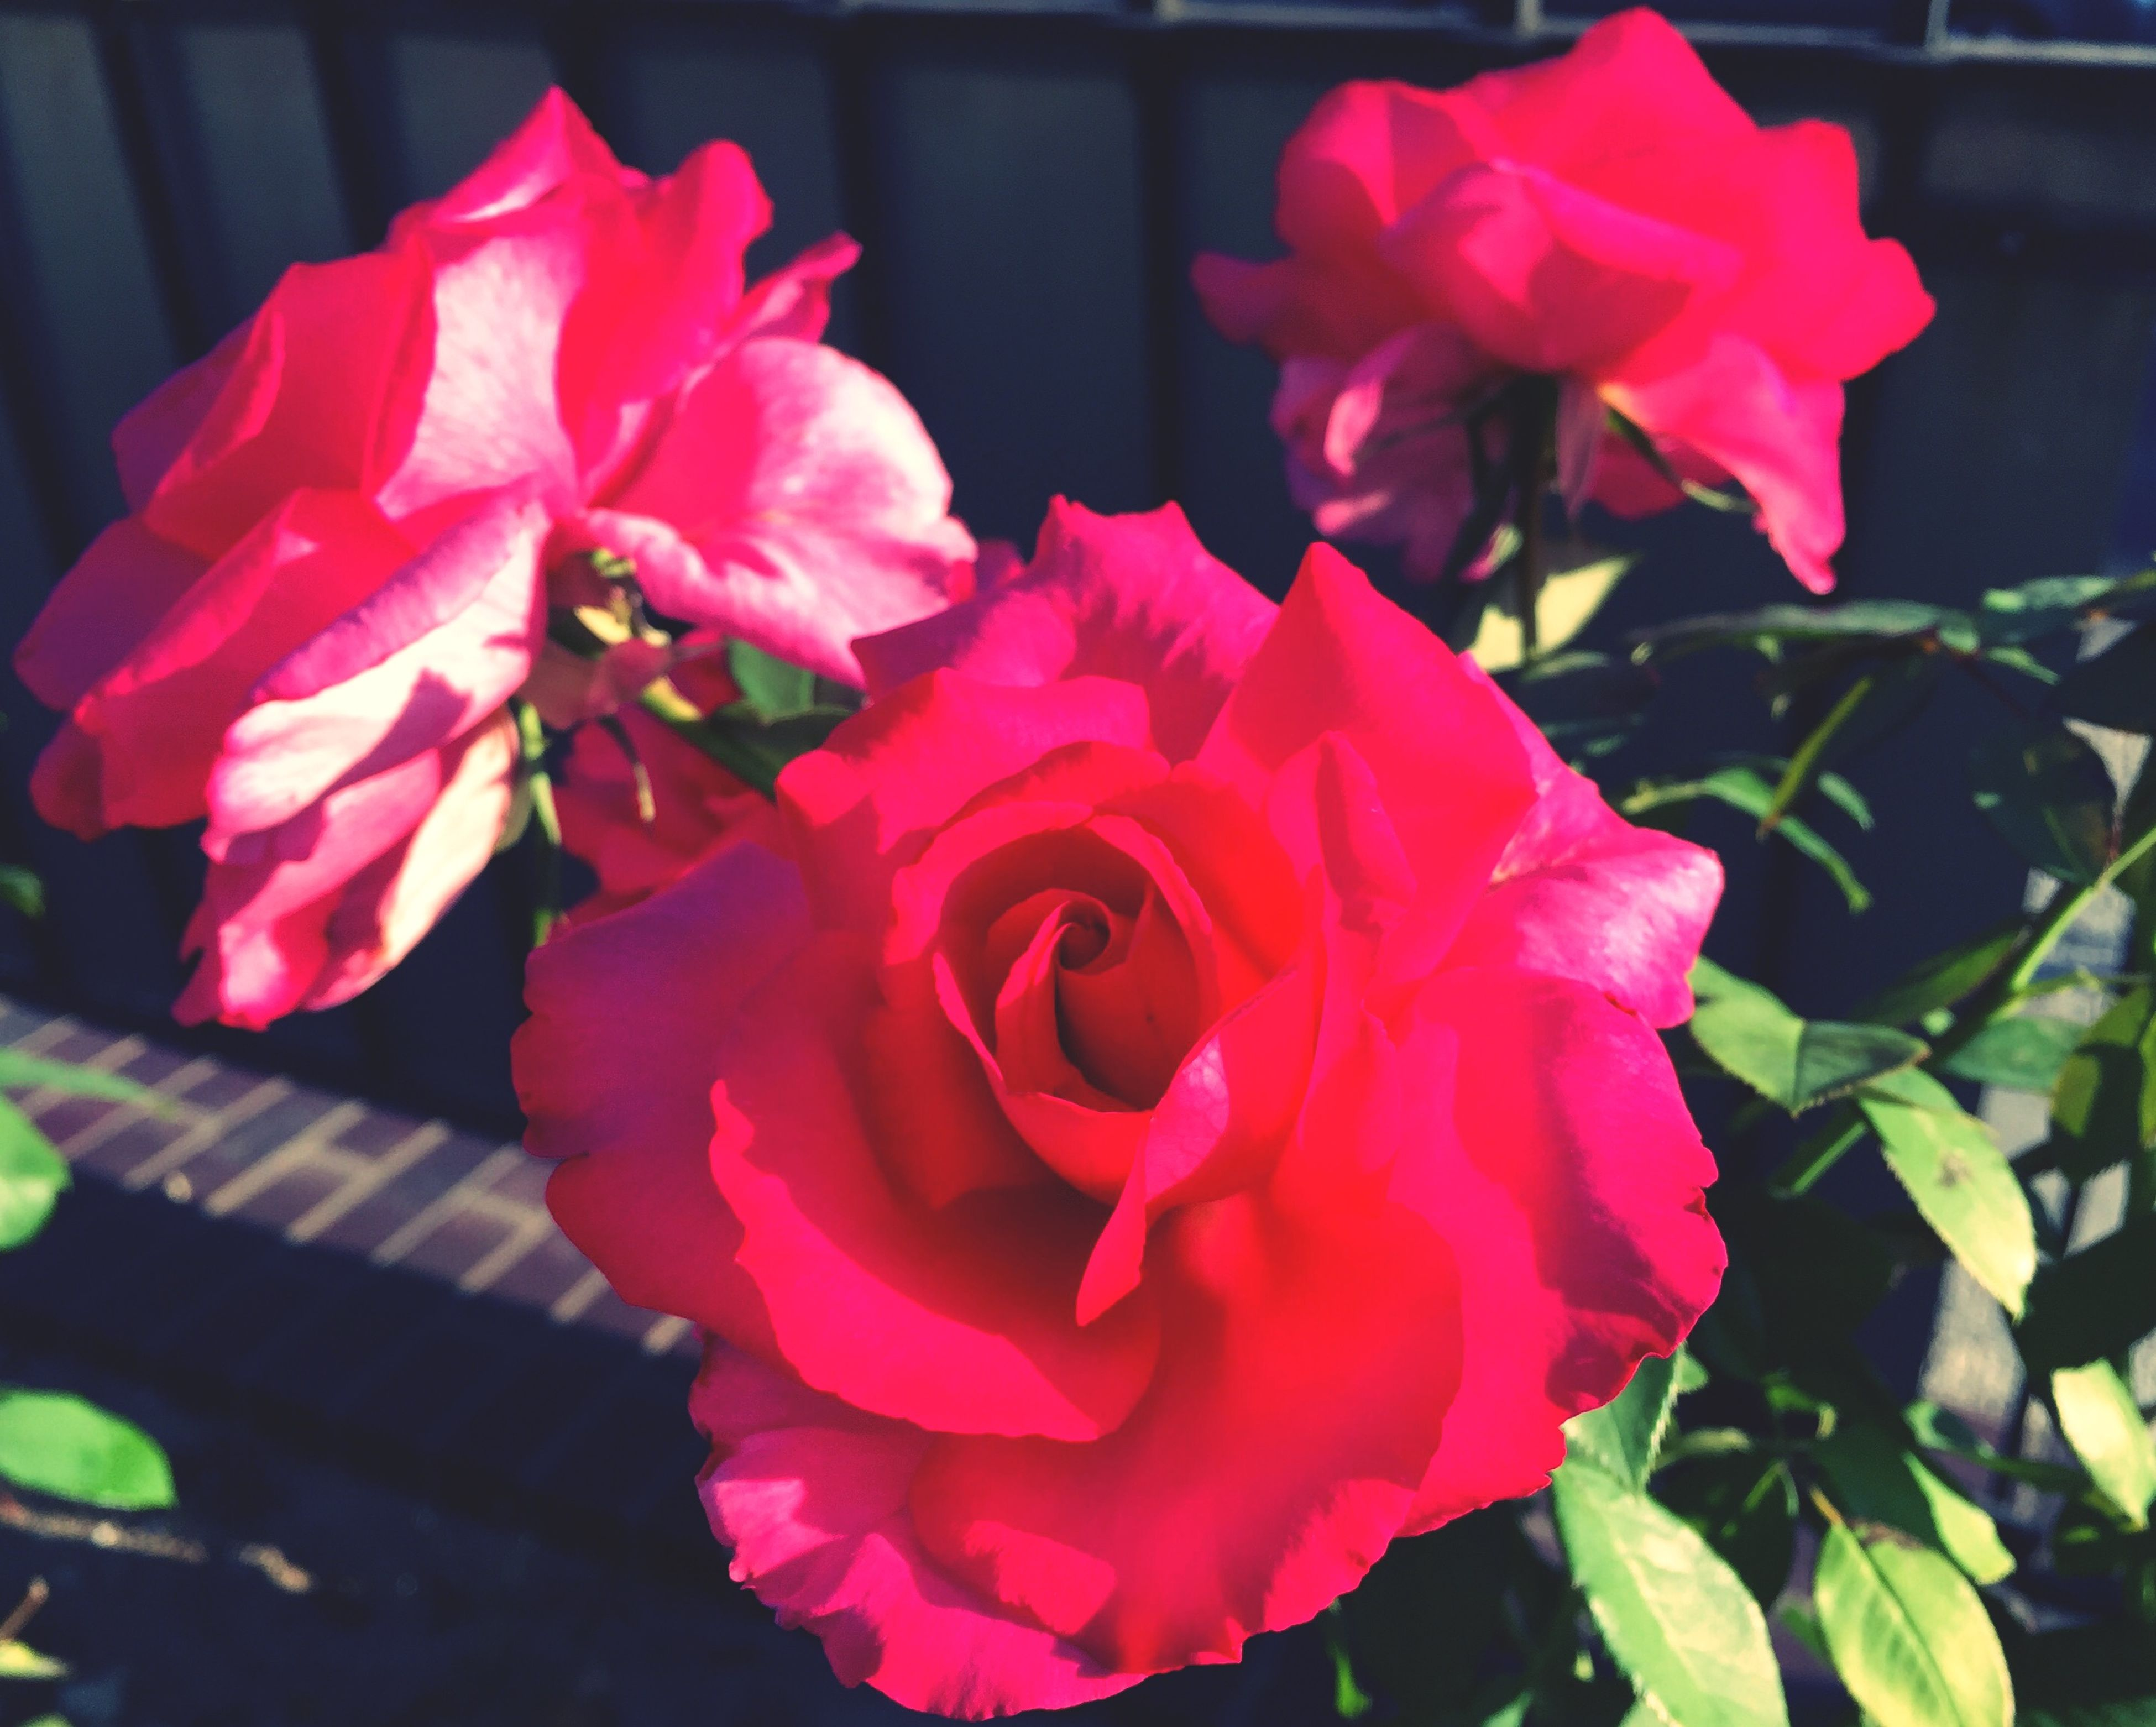 flower, petal, freshness, fragility, flower head, beauty in nature, pink color, growth, rose - flower, close-up, blooming, nature, plant, leaf, focus on foreground, red, in bloom, indoors, rose, day